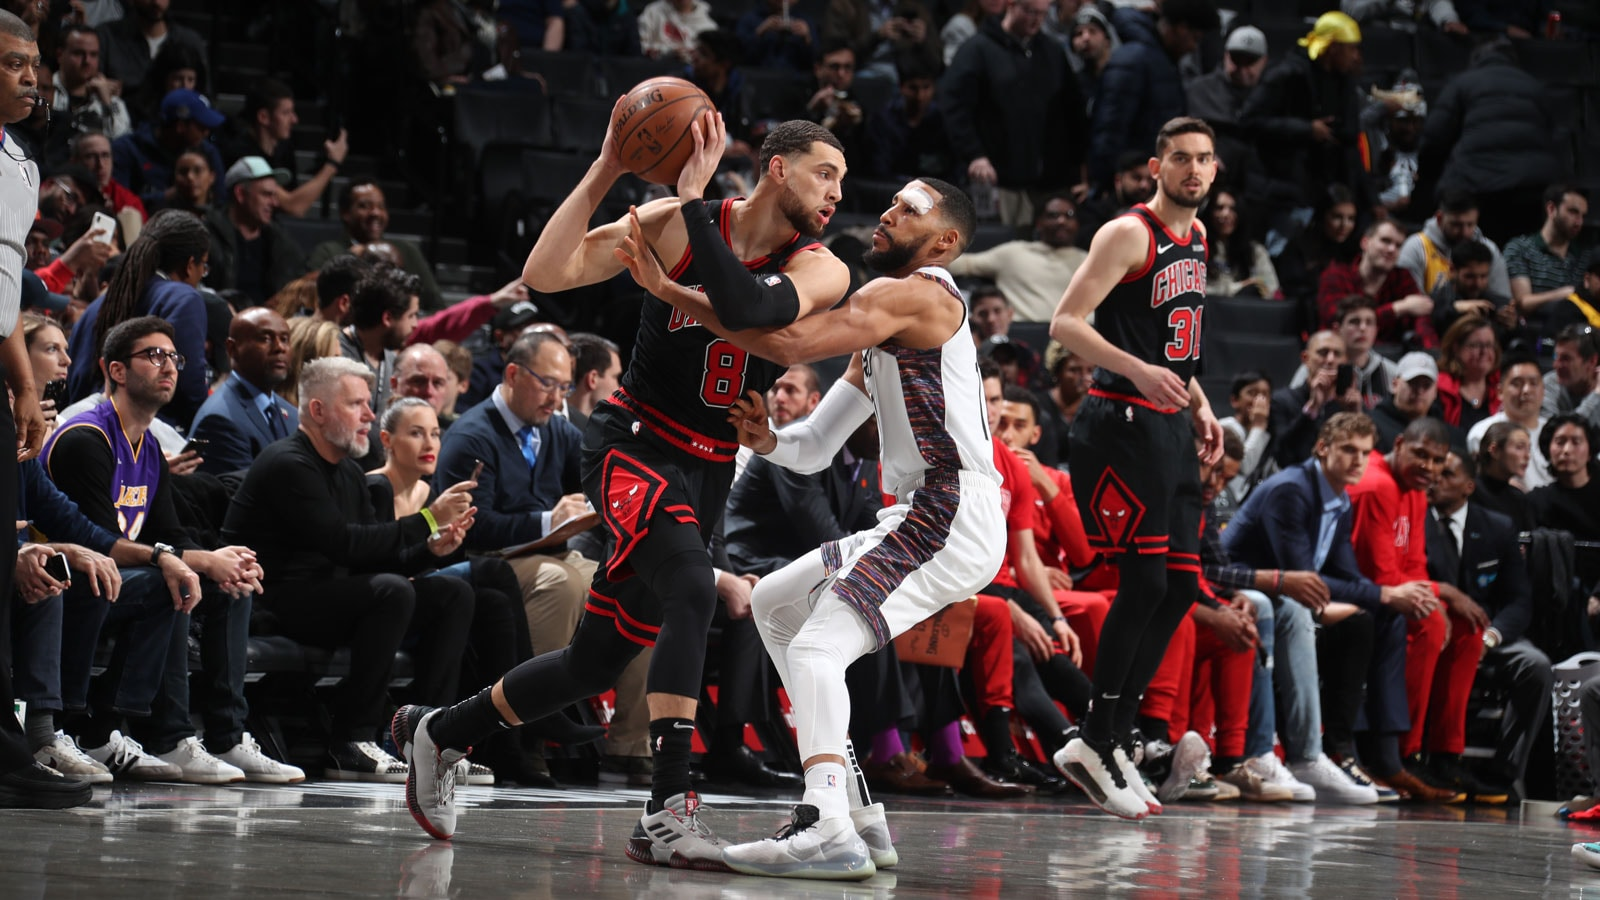 Zach LaVine holds the ball against the Brooklyn Nets